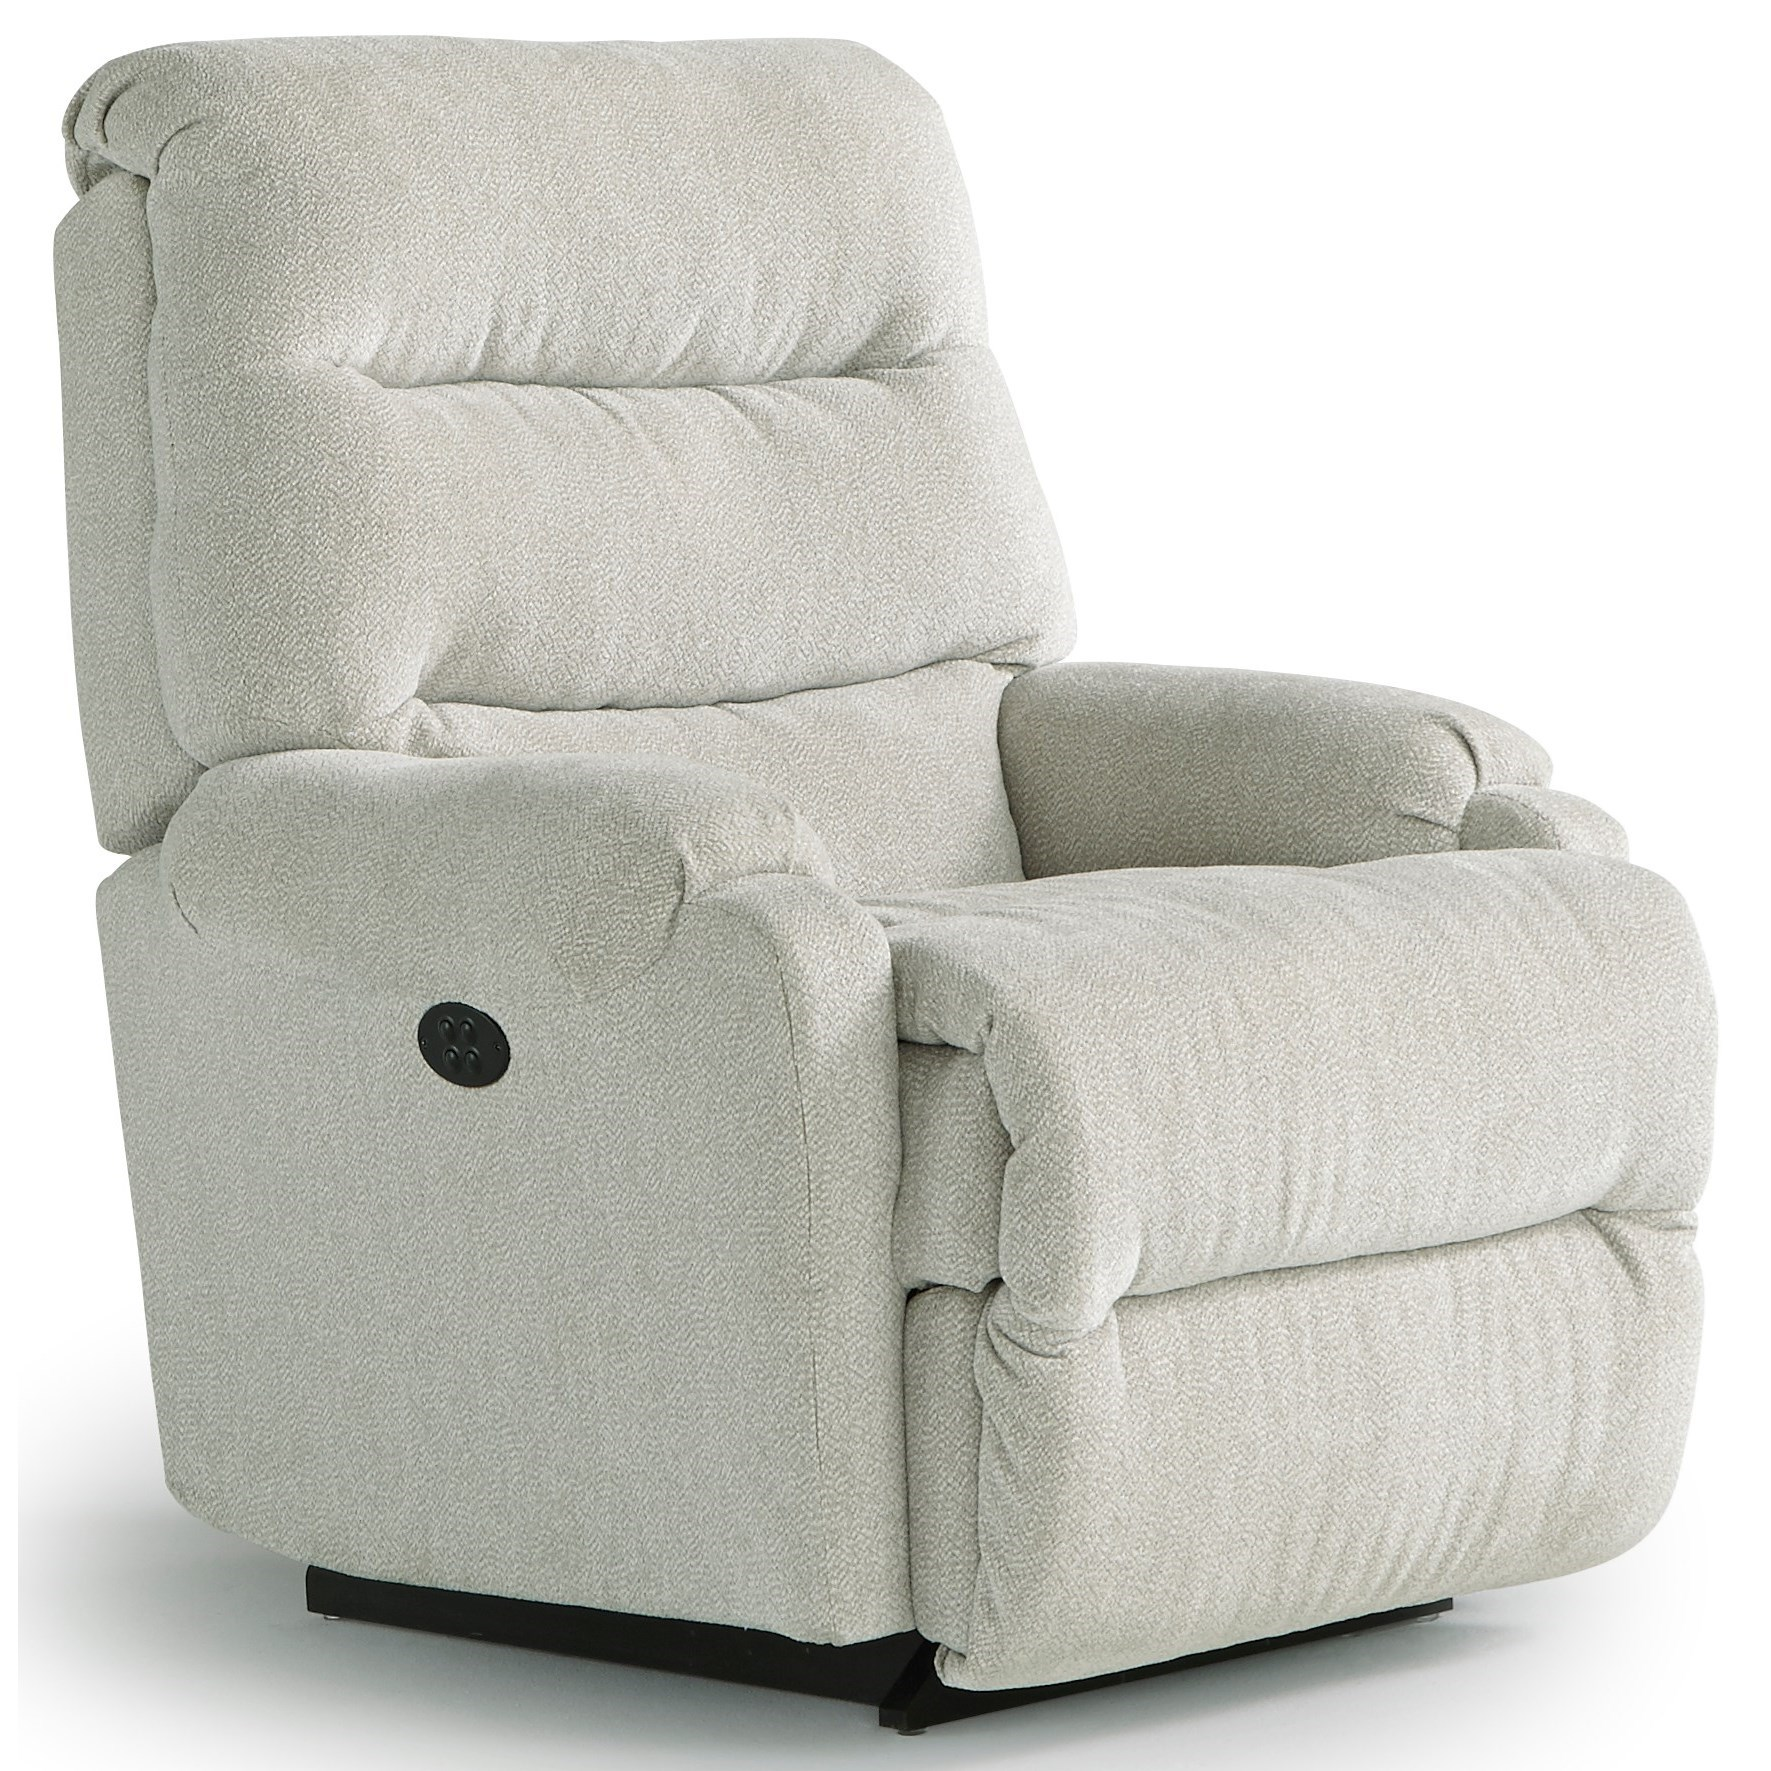 Petite Recliners Sedgefield Rocker Recliner by Best Home Furnishings at Steger's Furniture